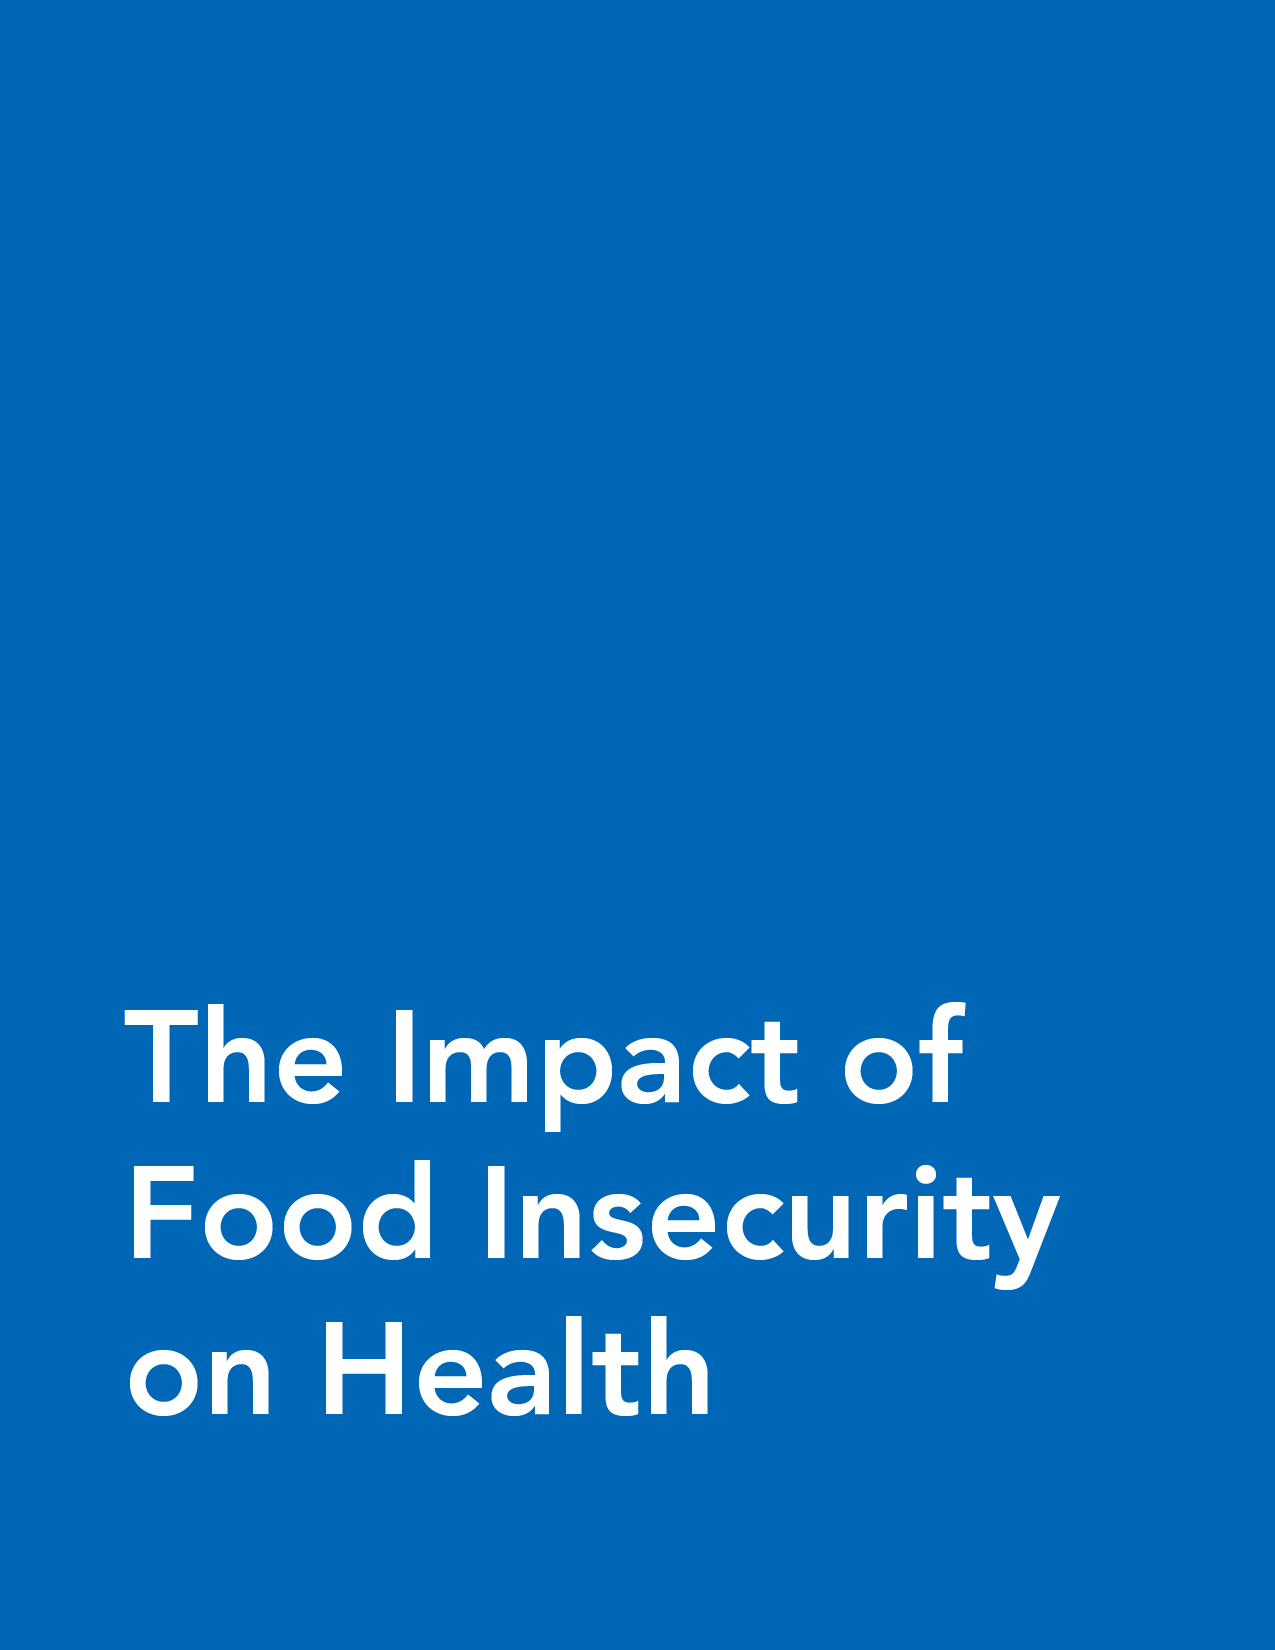 Fact Sheet: The Impact of Food Insecurity on Health